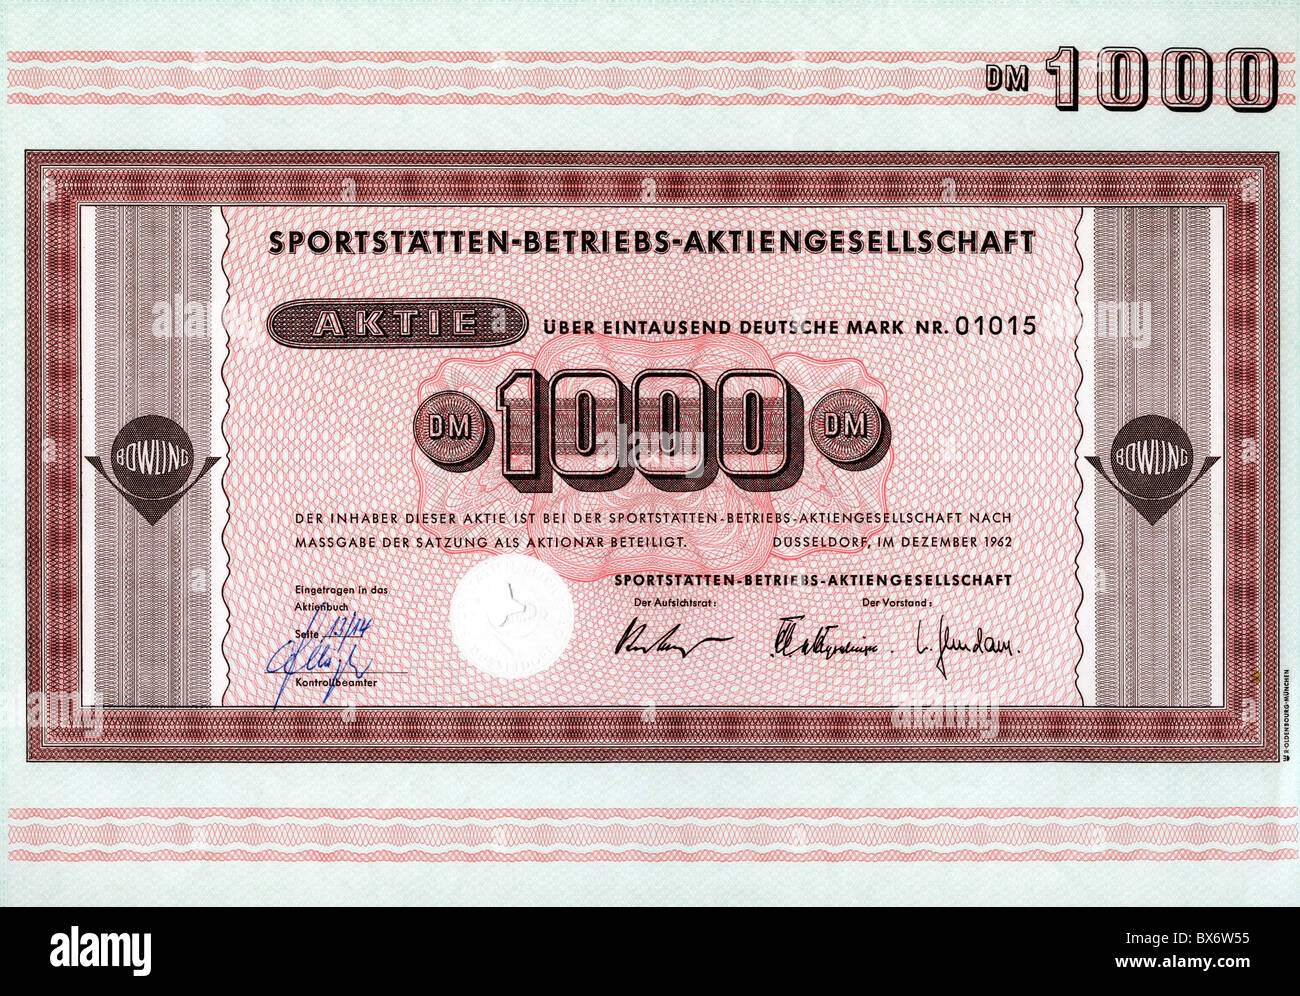 money / finance, stocks, Sportstaetten Betriebs-Aktiengesellschaft, 1000 DM, Duesseldorf, December 1962, Additional - Stock Image